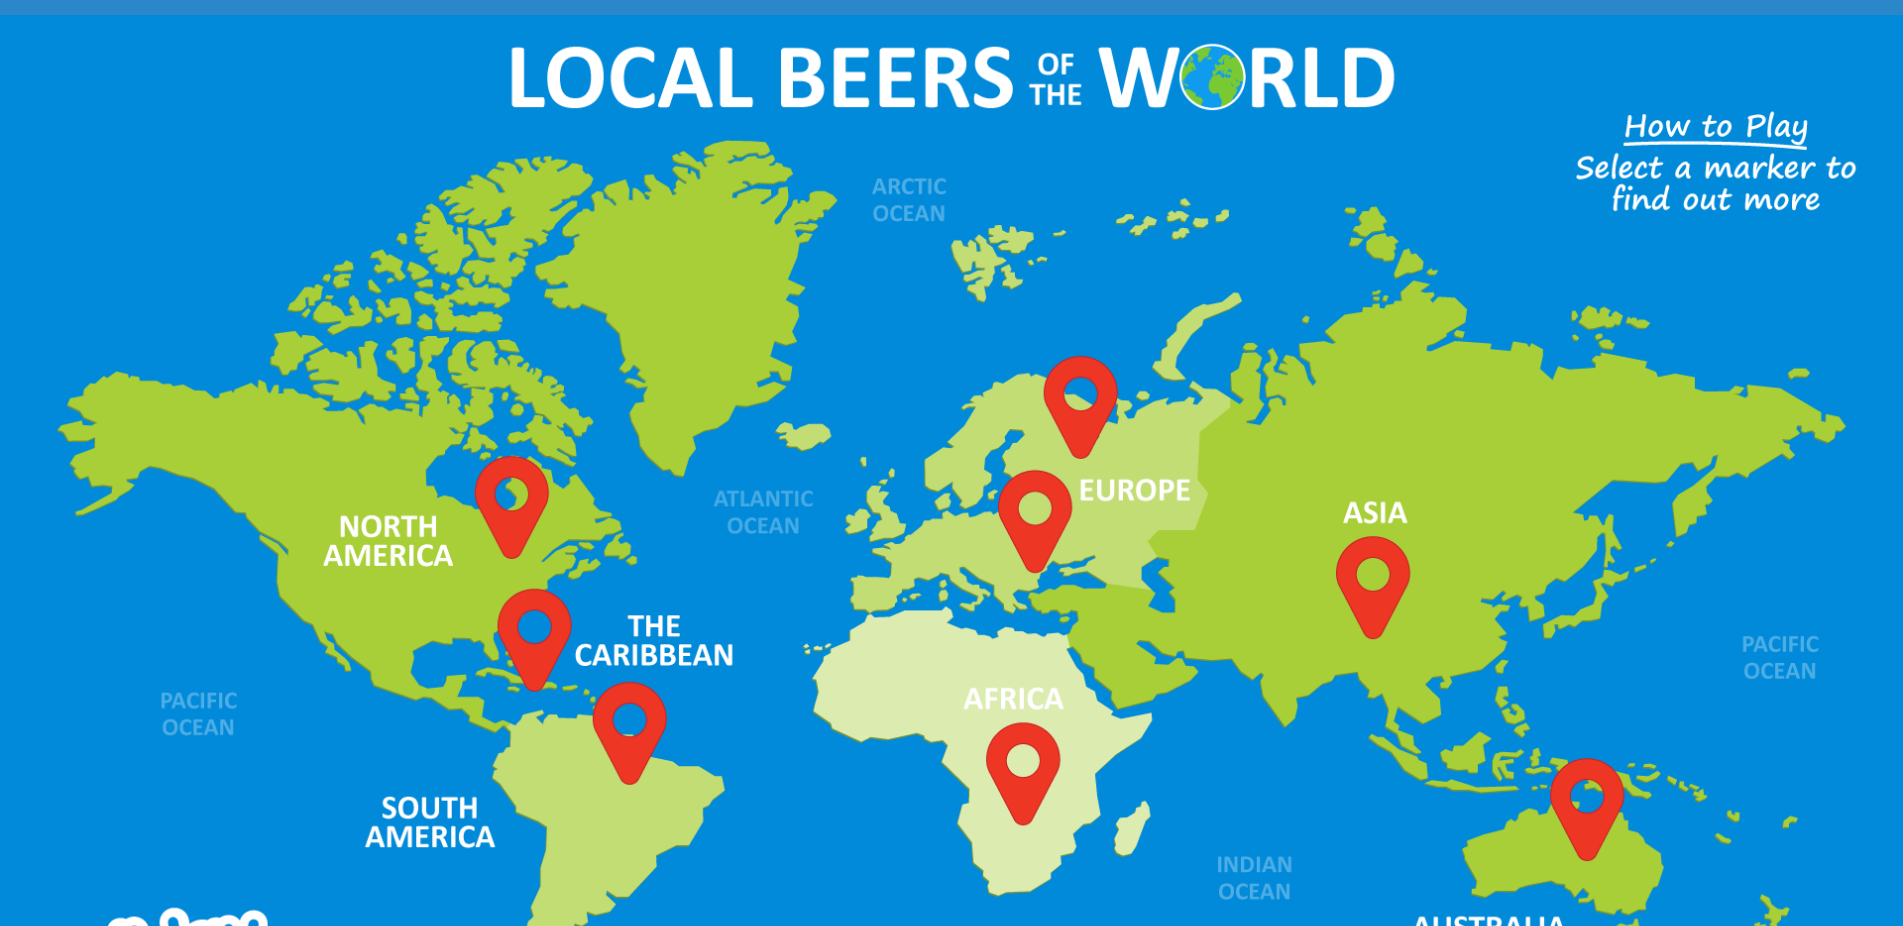 New interactive map showcases local beers of the world you can enjoy while on holiday